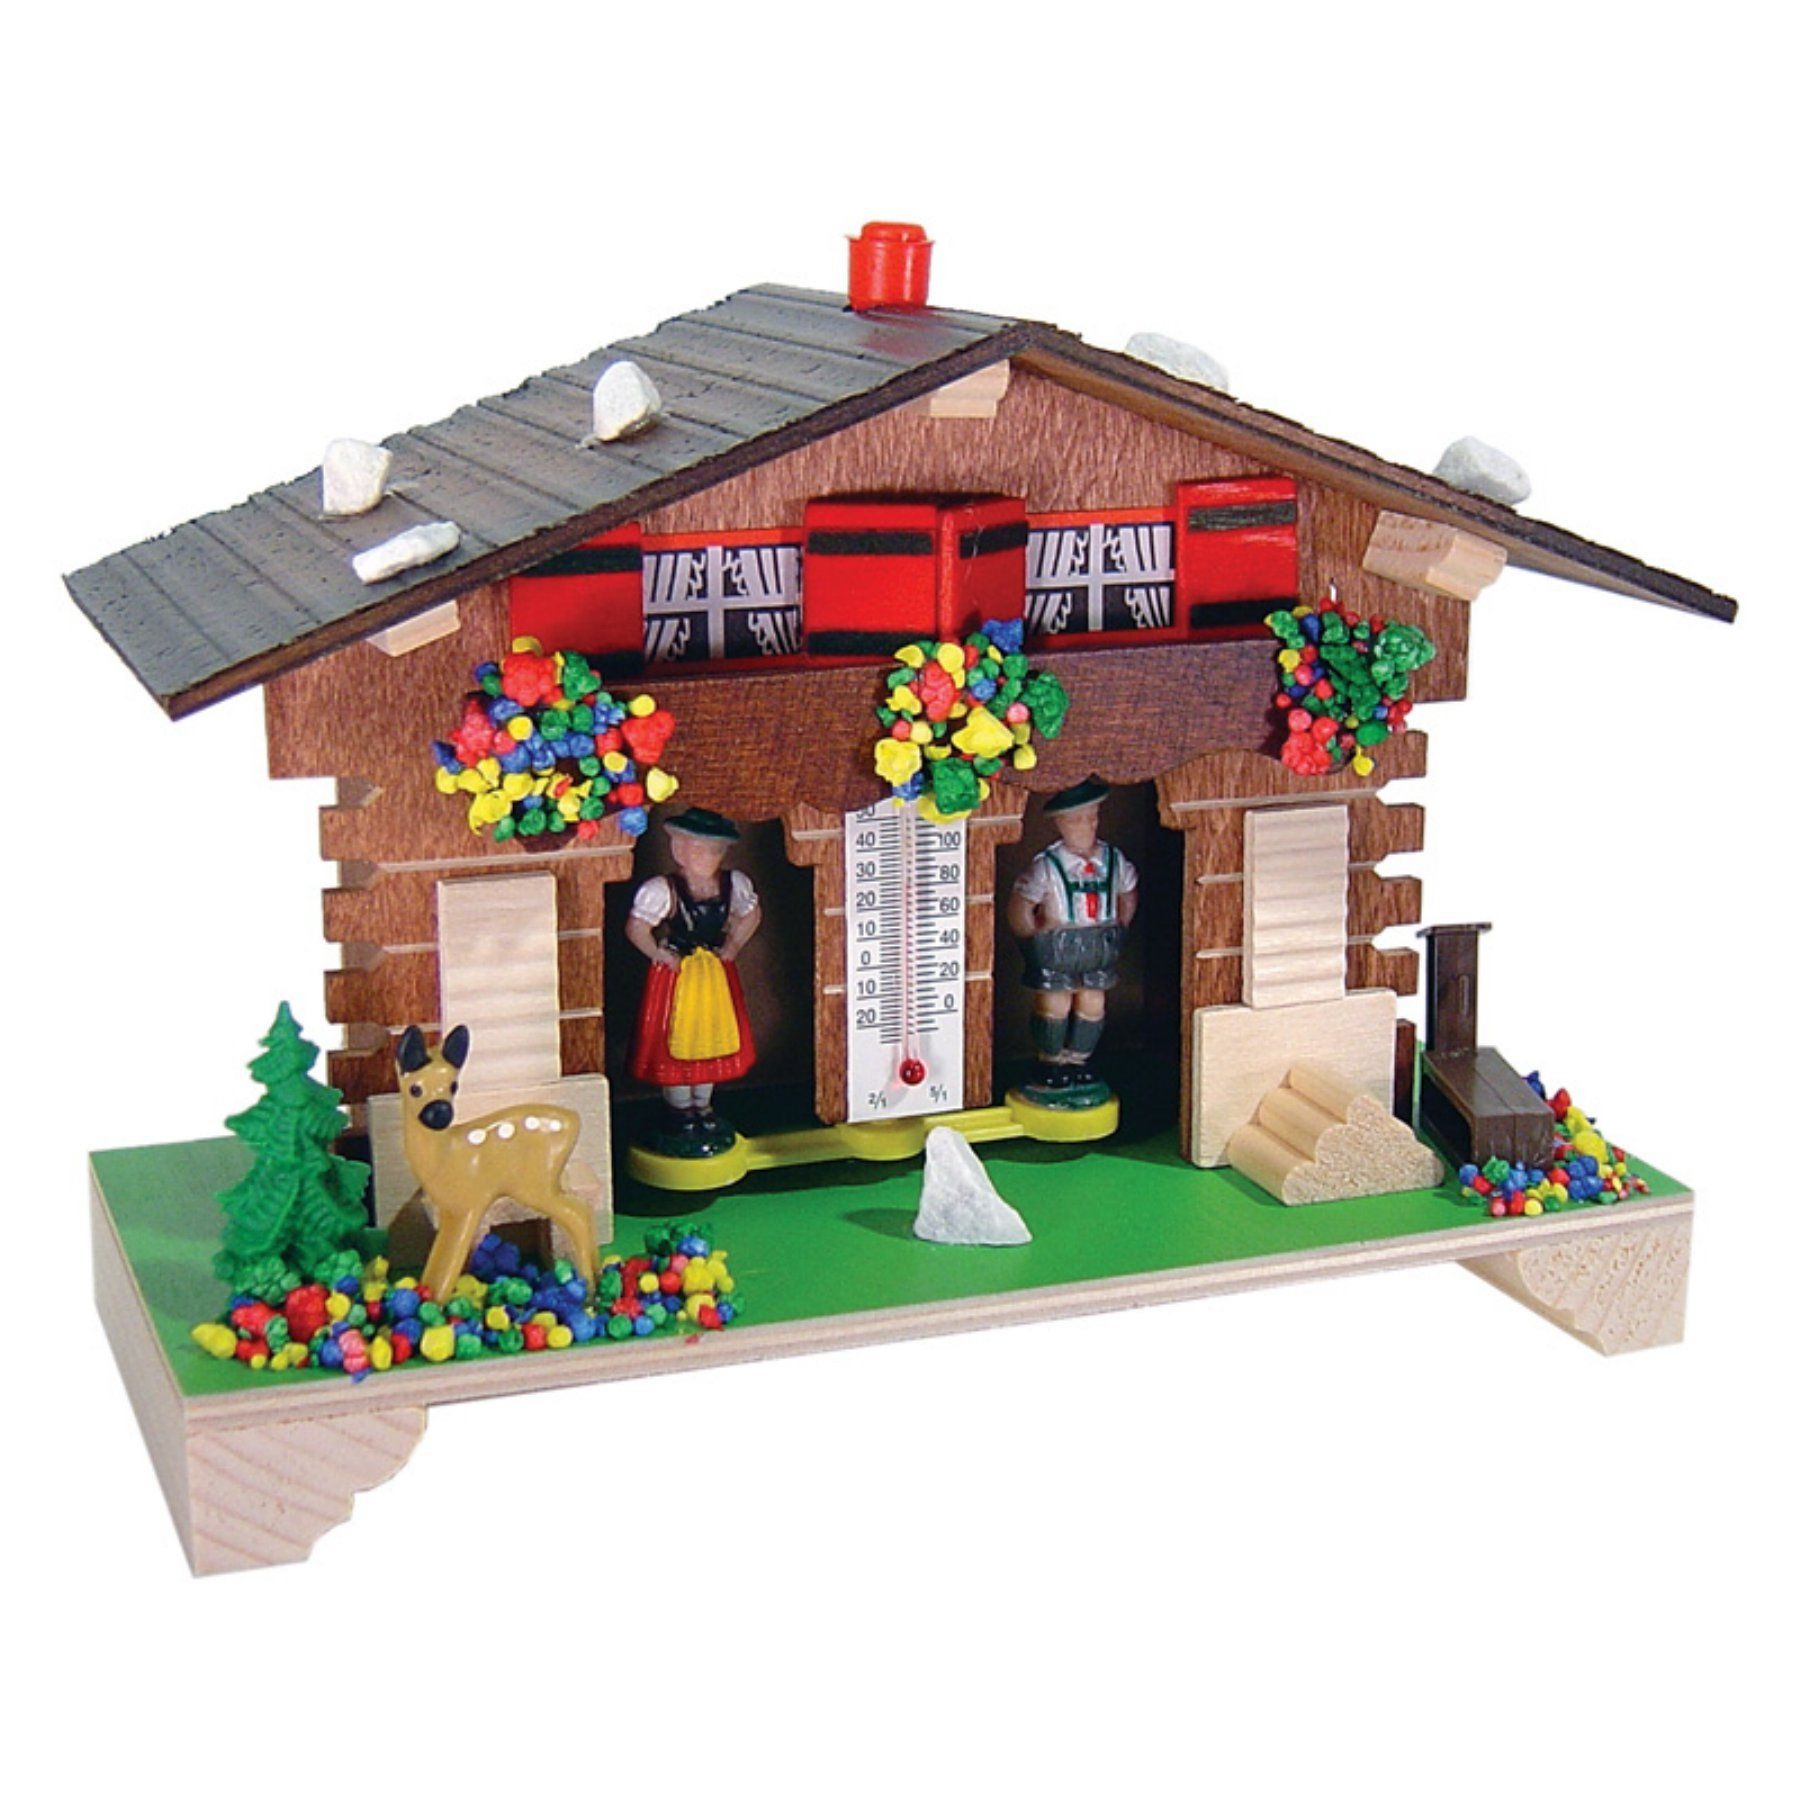 River City Clocks Traditional German Weatherhouse with Deer and Thermometer - 1020T-06